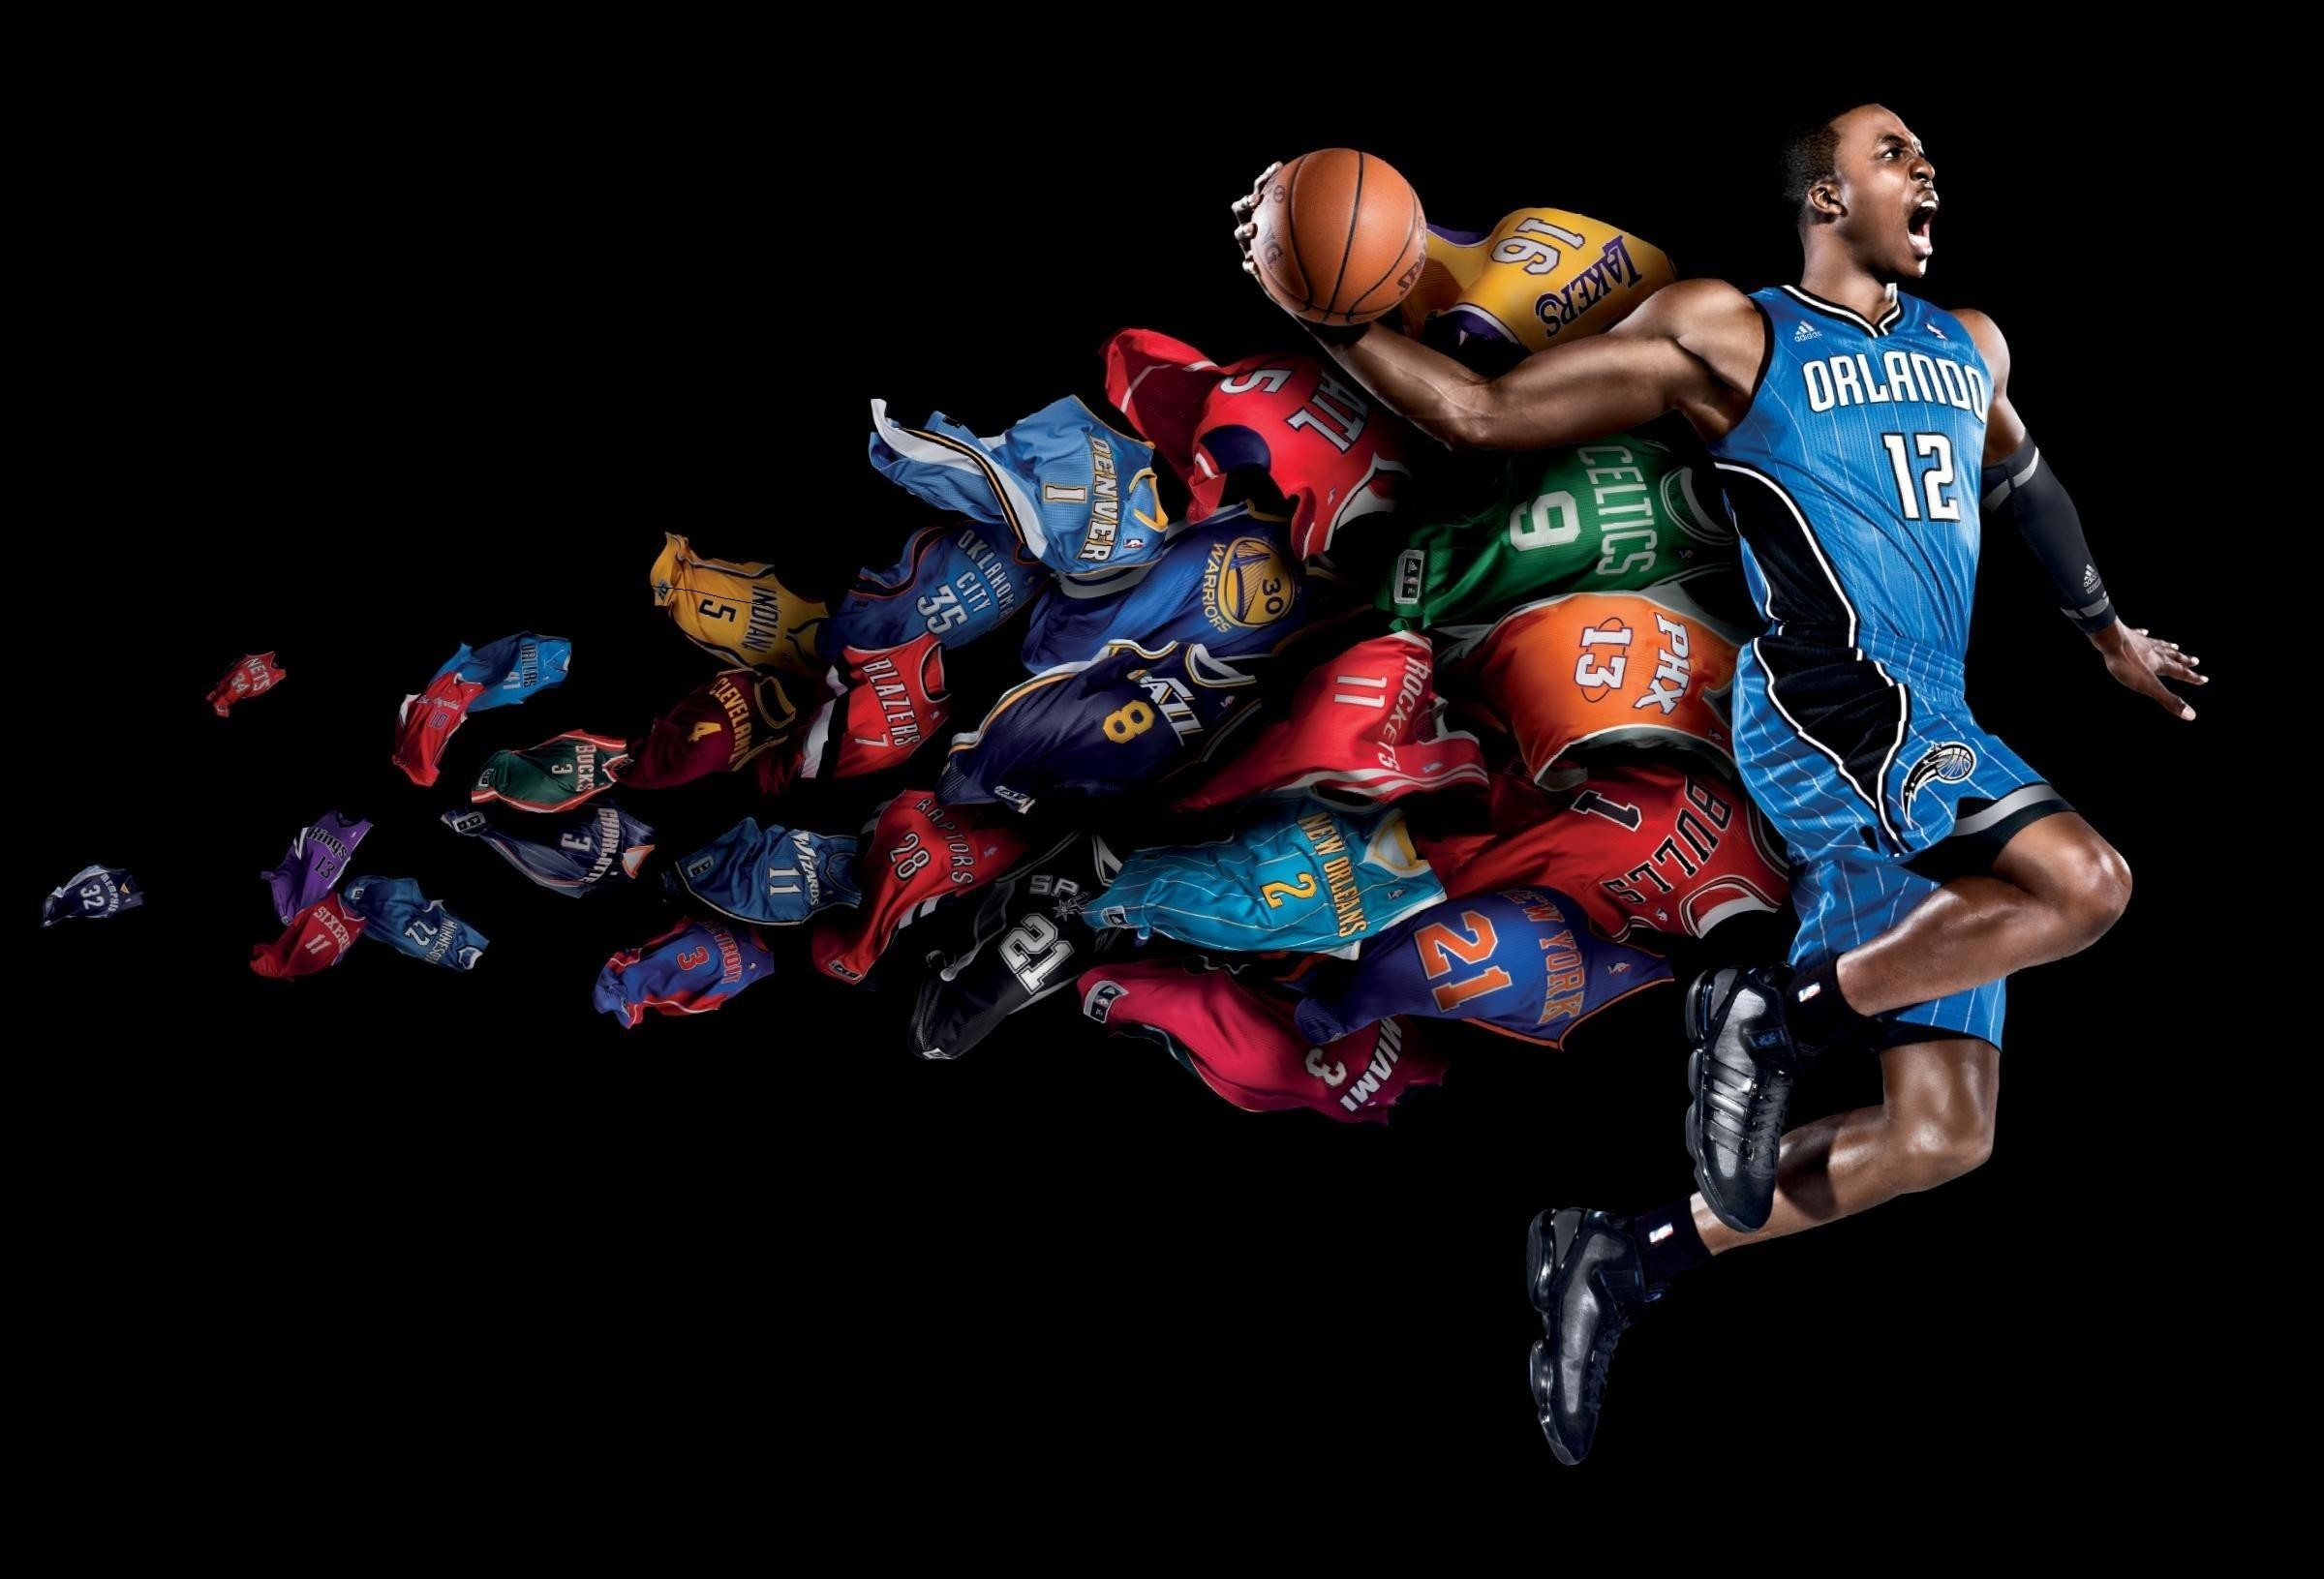 Basketball Wallpapers For Girls Wallpapers Mobile Sports .